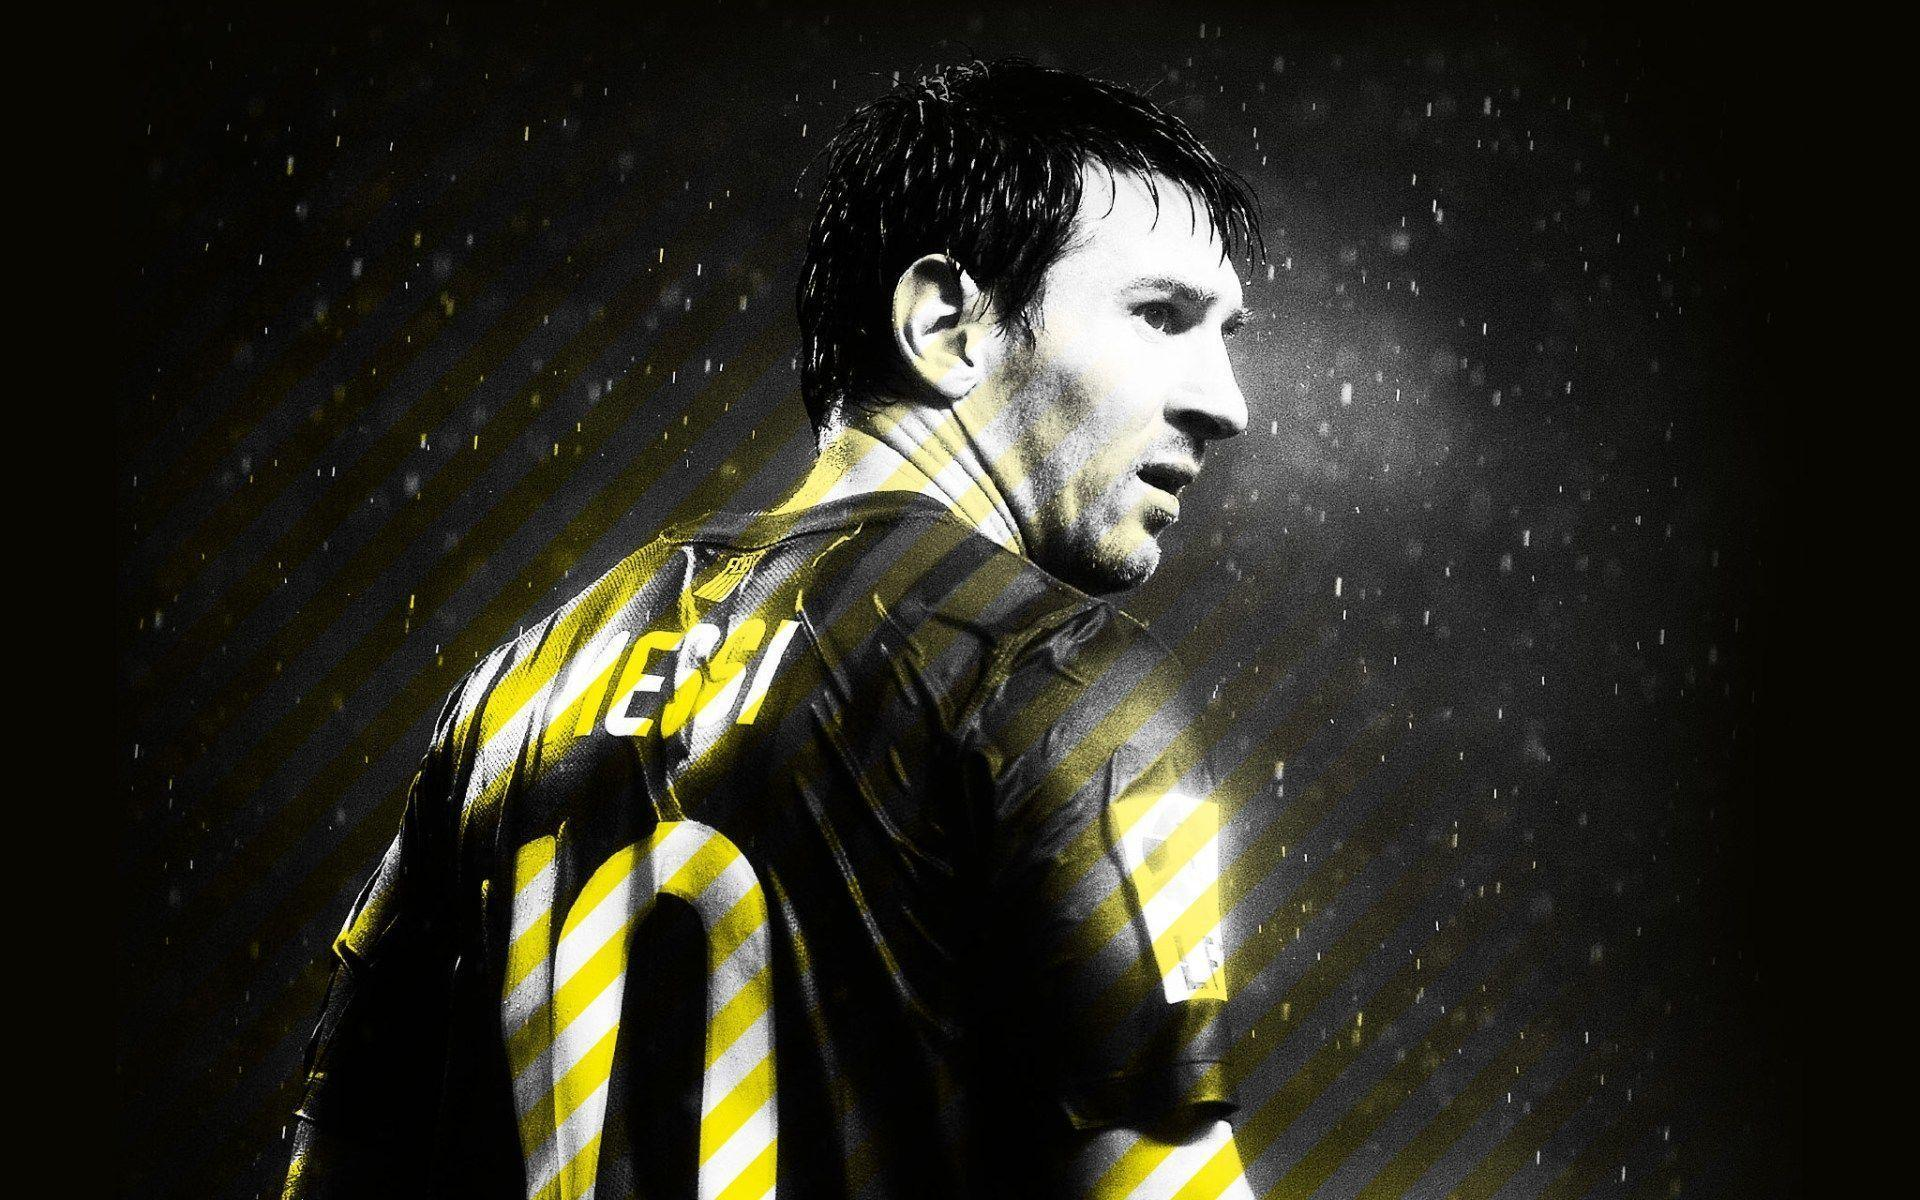 Messi Hd 2 Wallpapers and Background